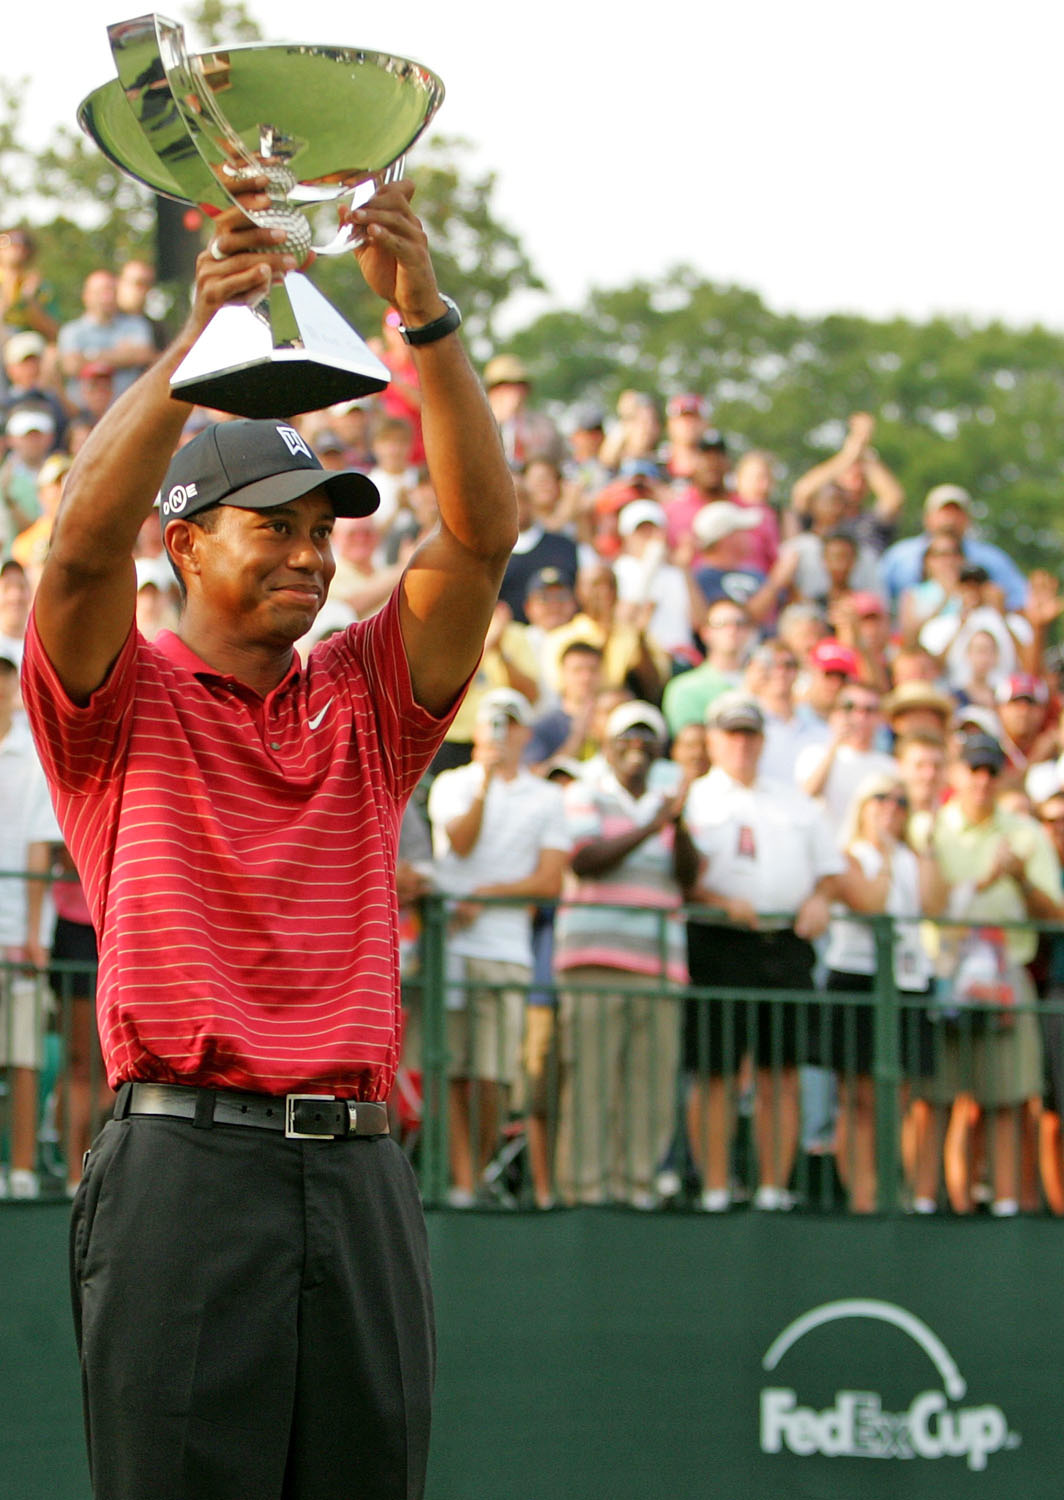 Tiger Woods holds the FedEx Cup after winning the Tour Championship in 2007.